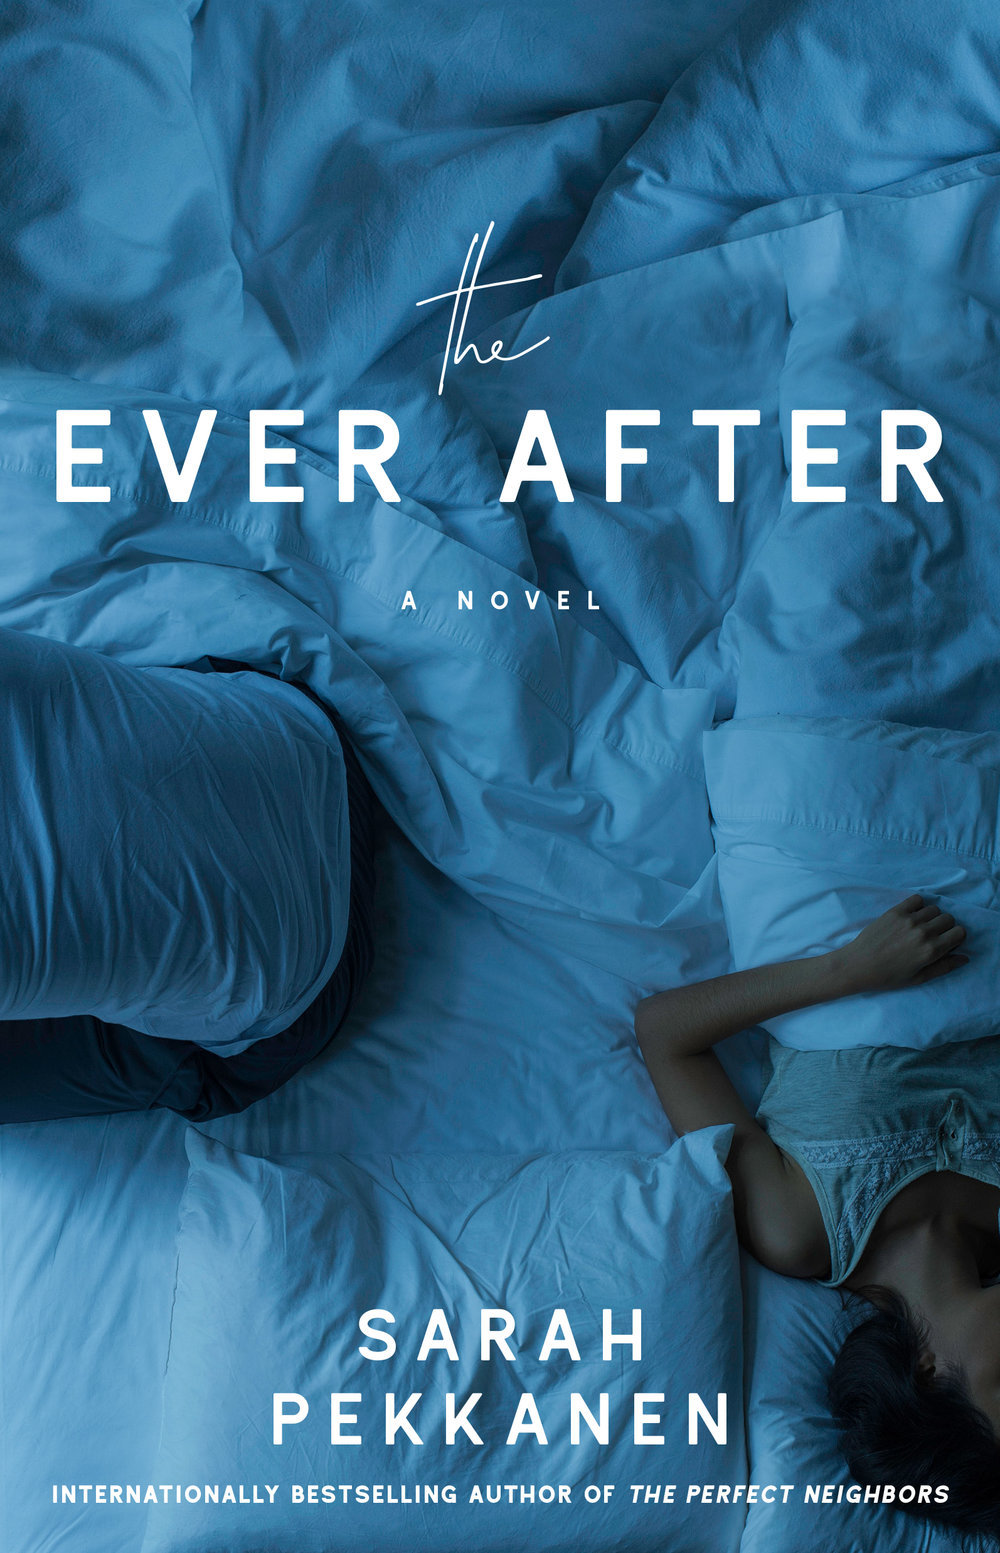 Ever After Cover Image - 9781501106989.jpg